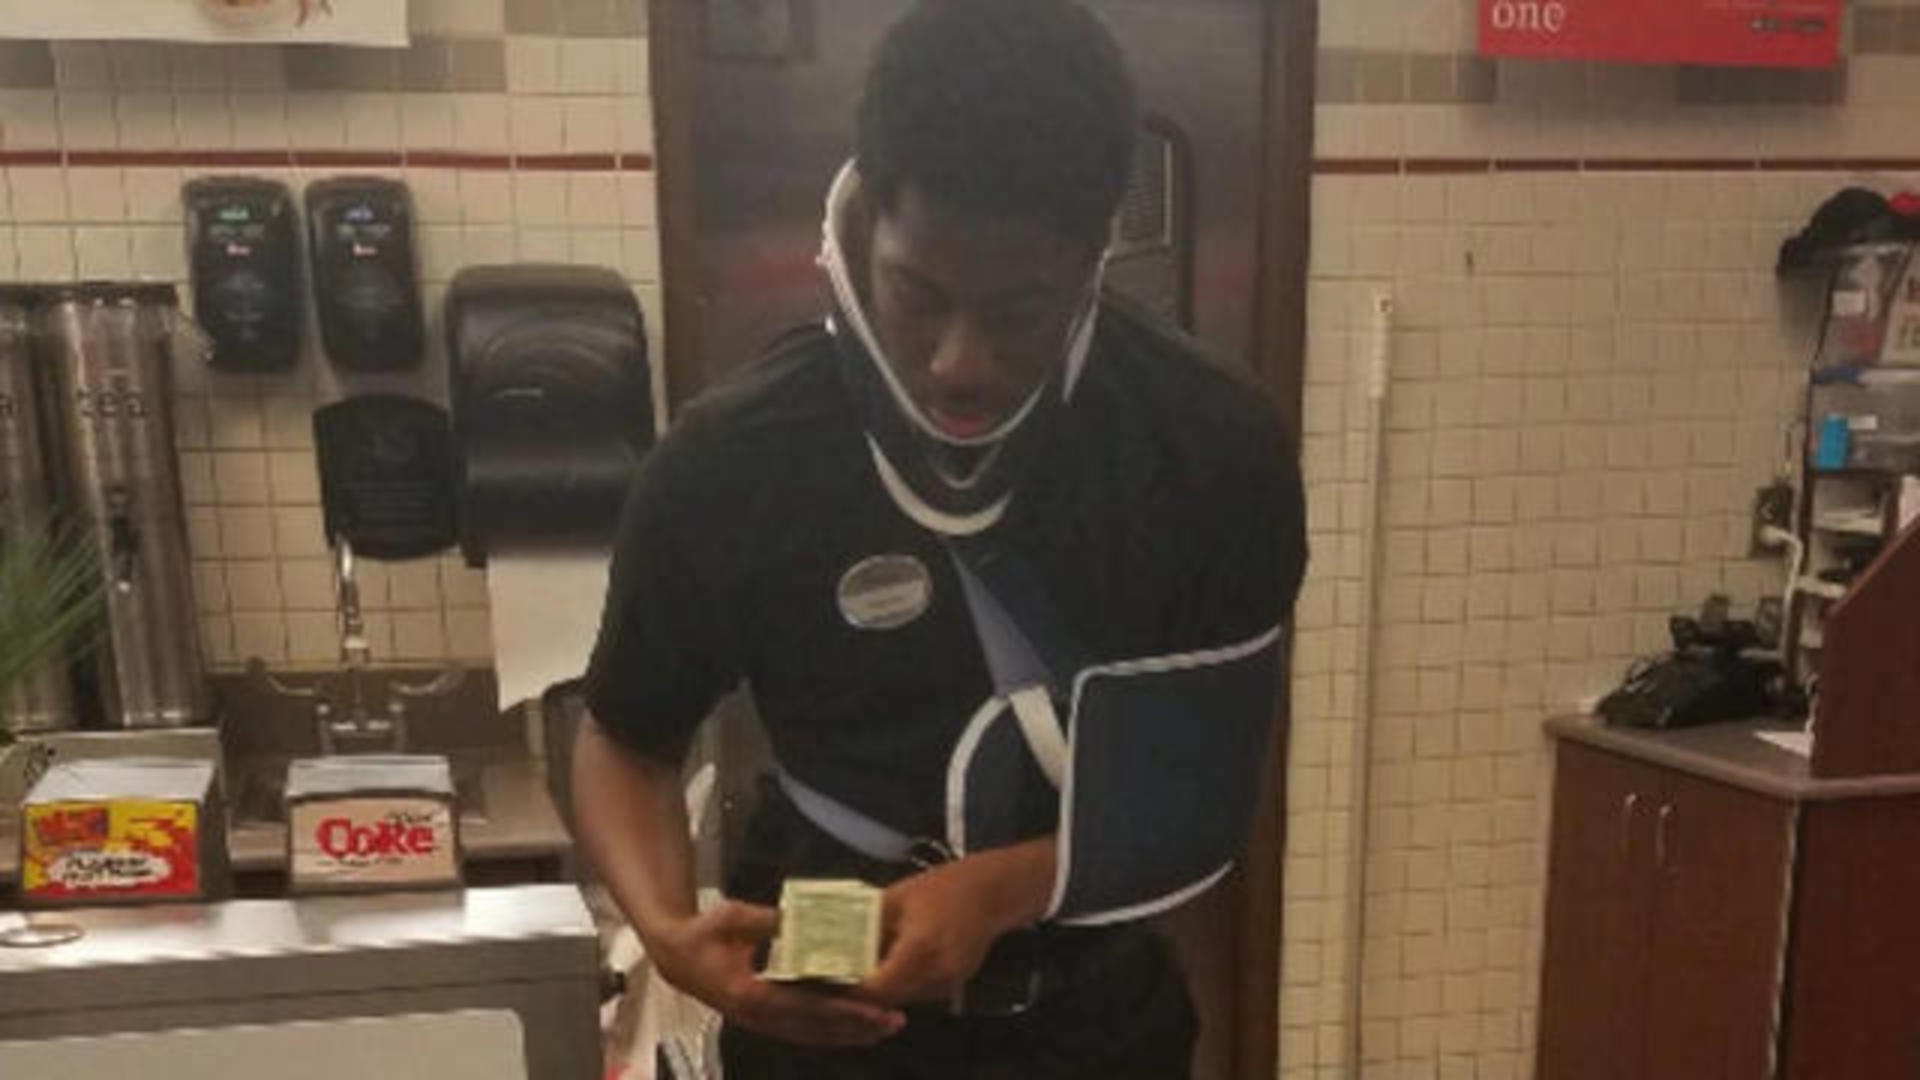 120 Chan Porn viral photo of dedicated teen leads to gofundme